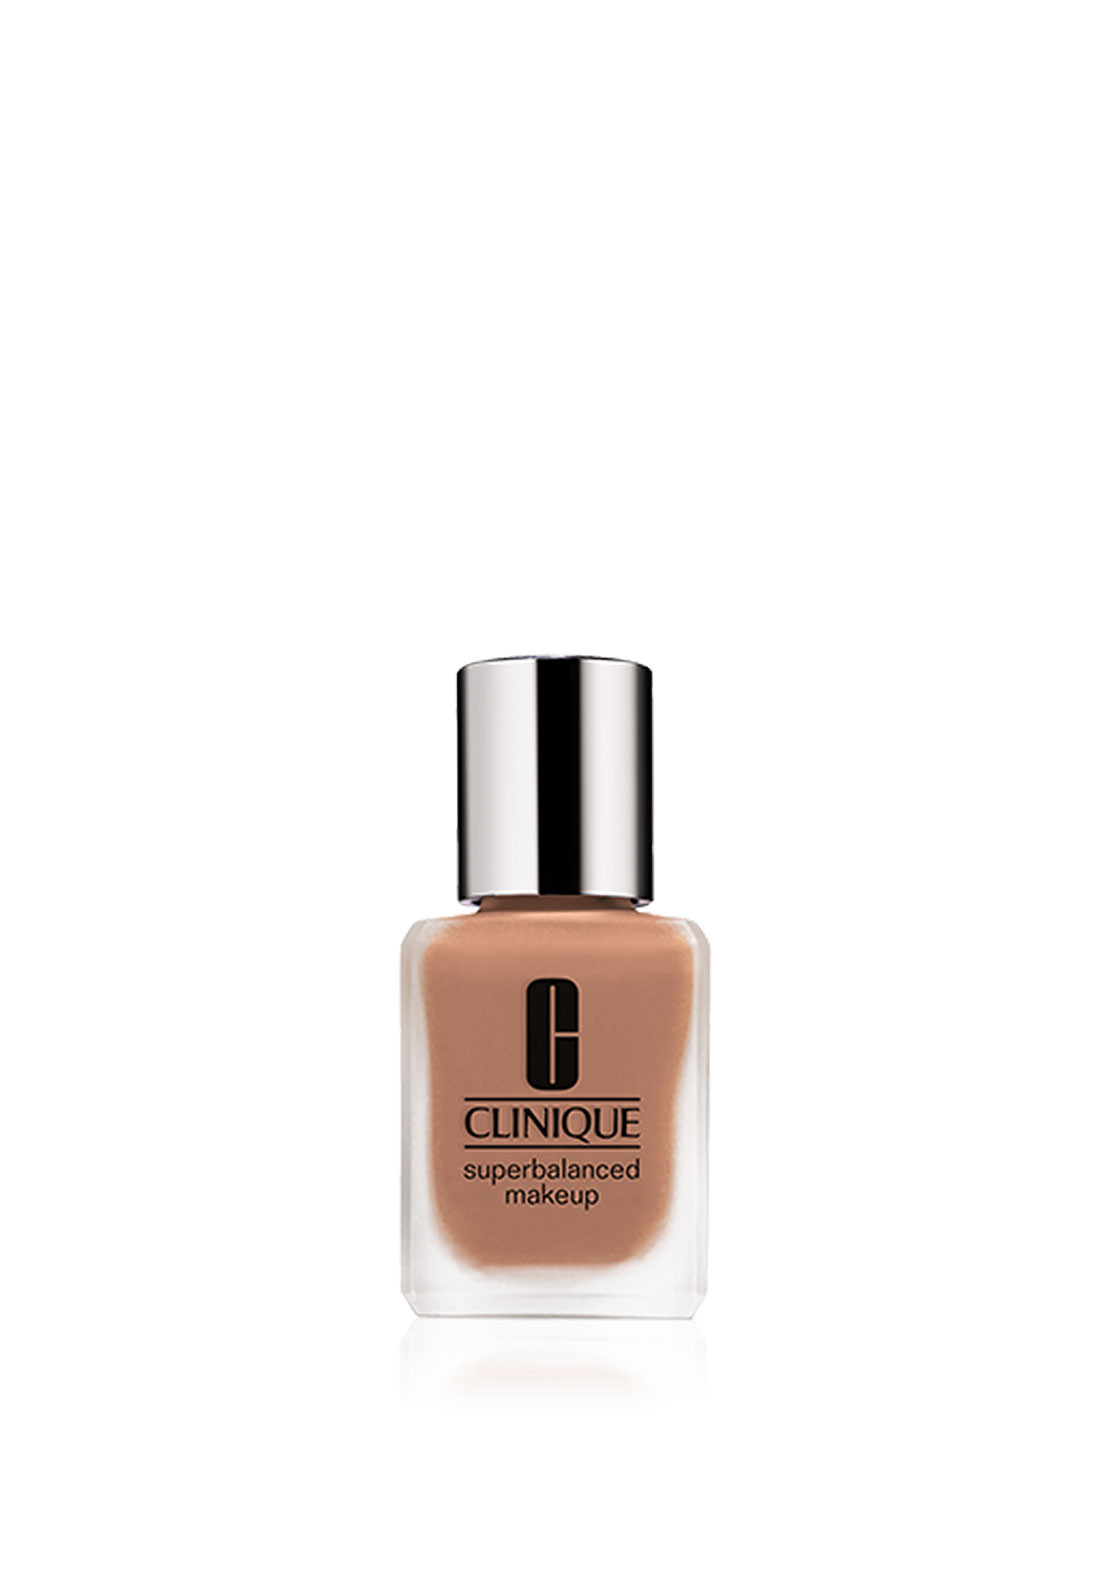 Clinique Superbalanced Make Up Foundation, Honeyed Beige